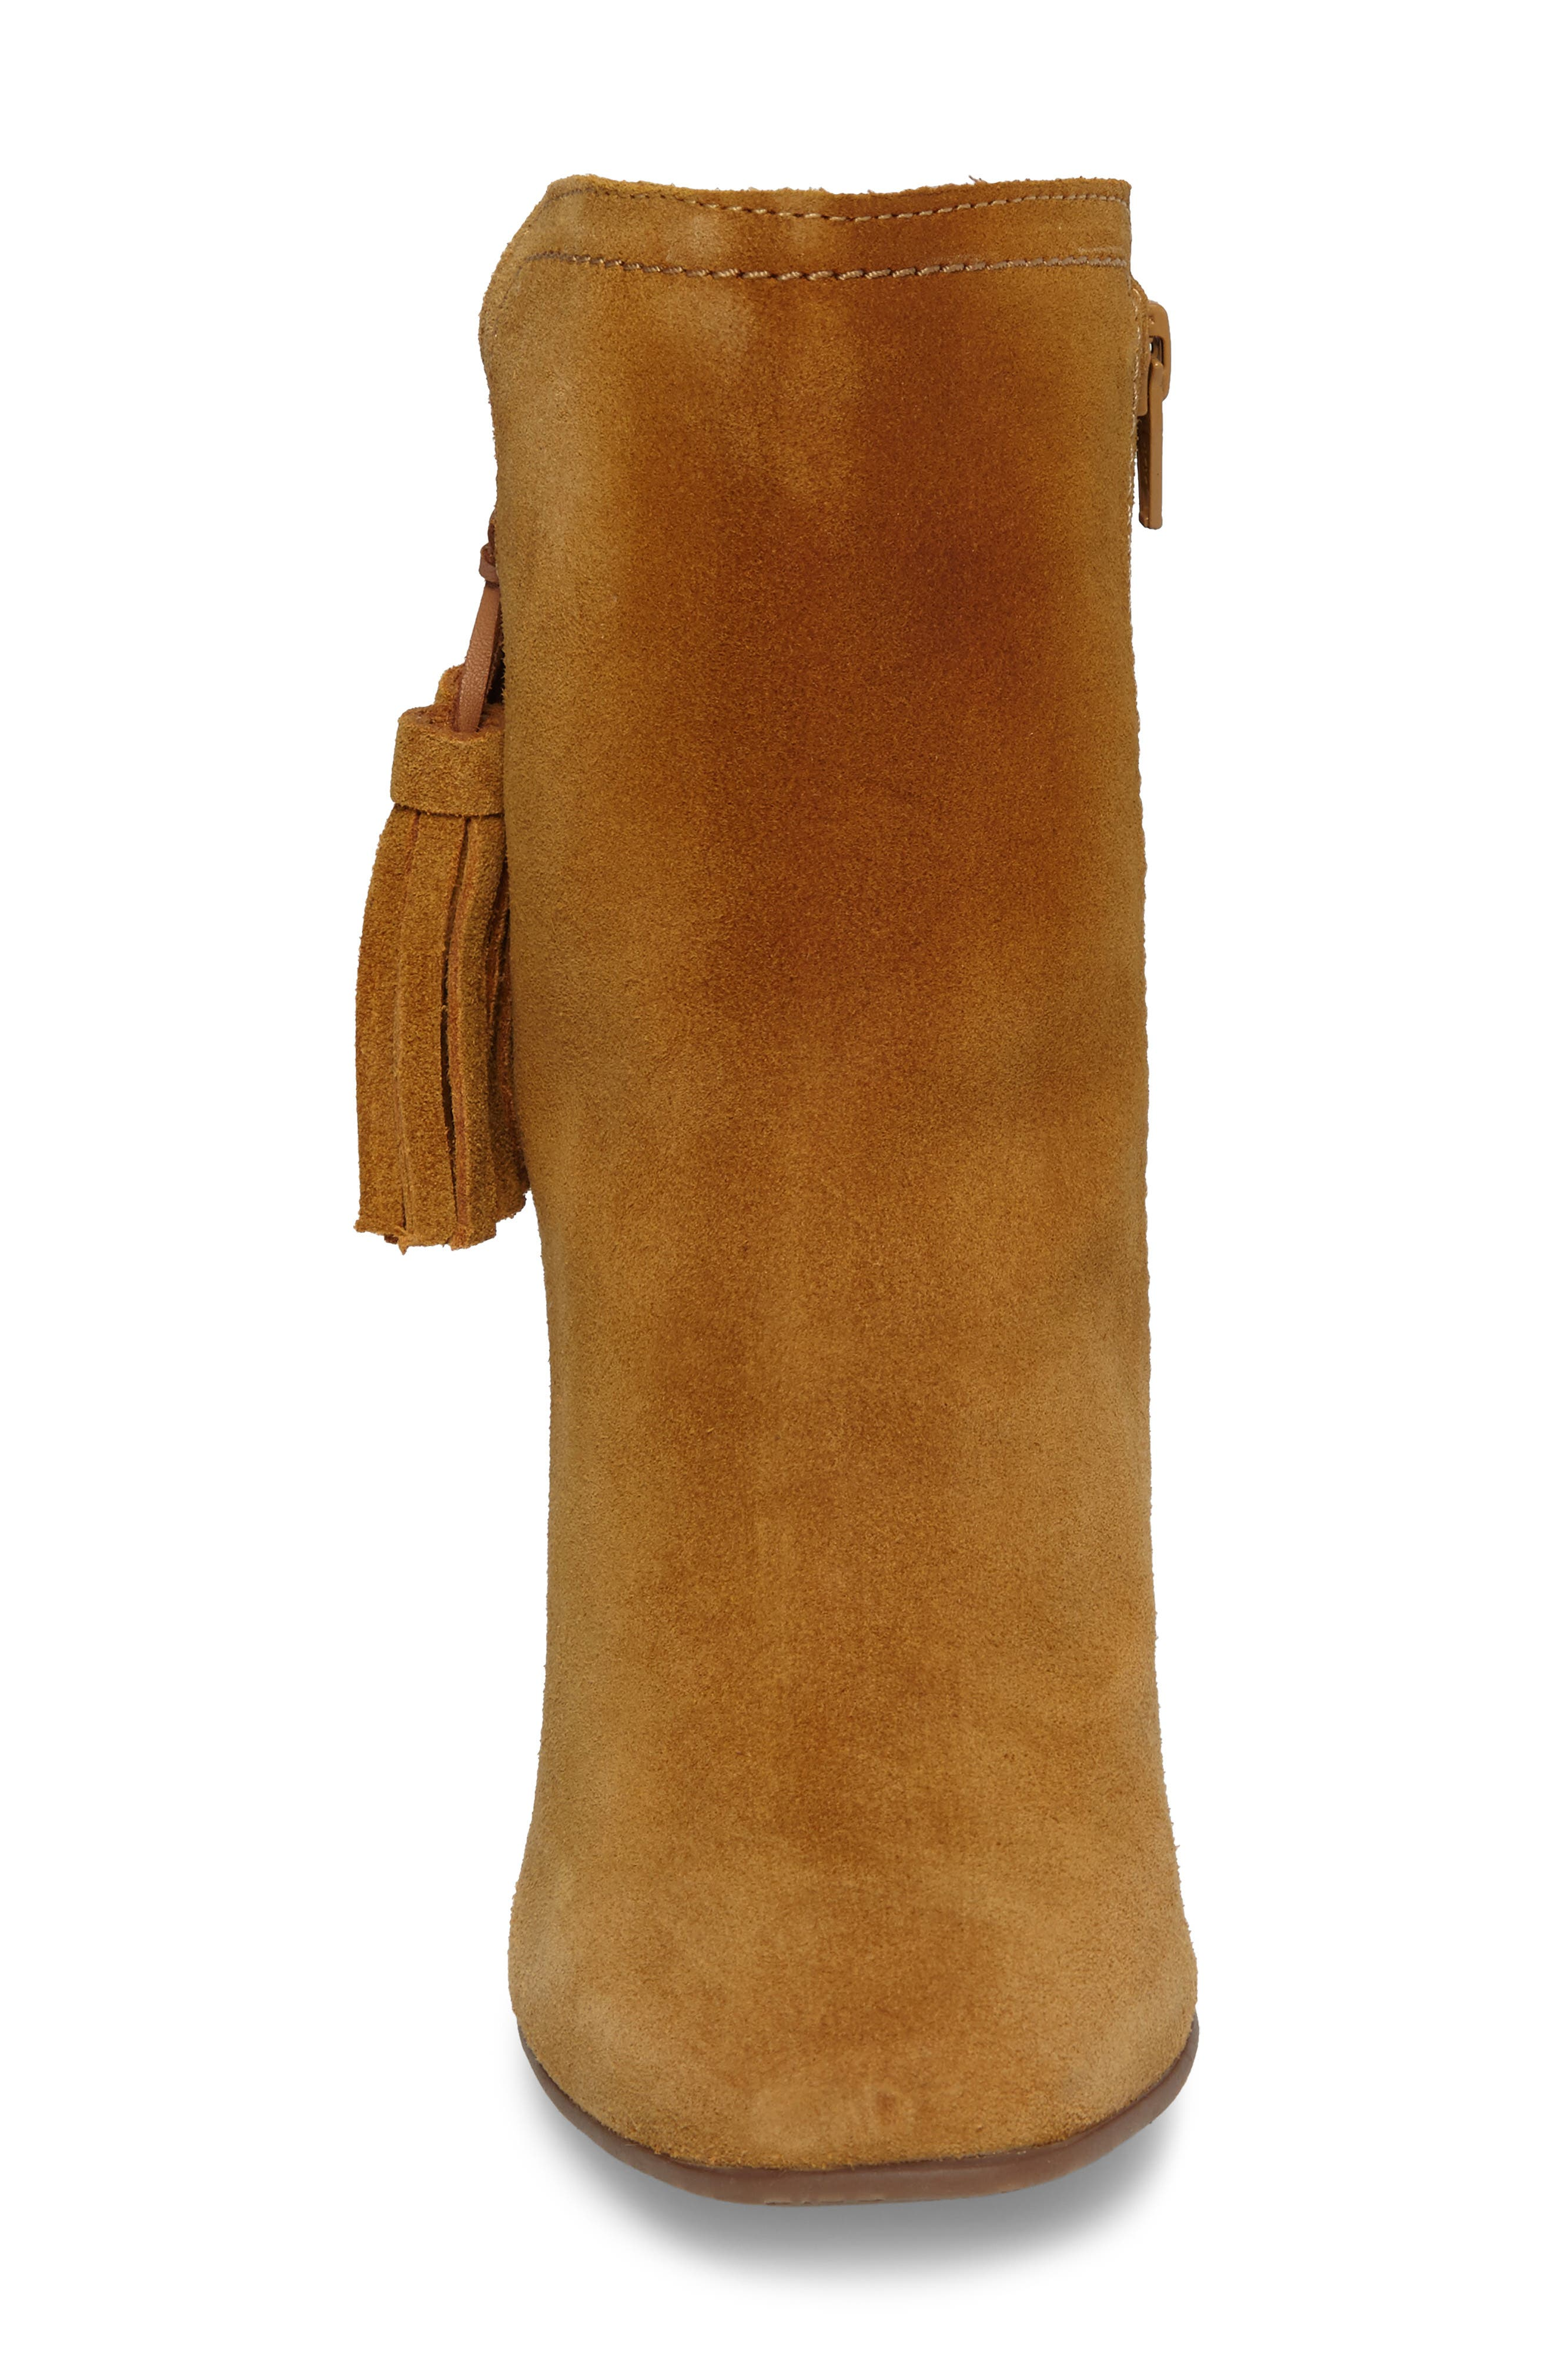 Daisee Billie Bootie,                             Alternate thumbnail 4, color,                             Camel Suede